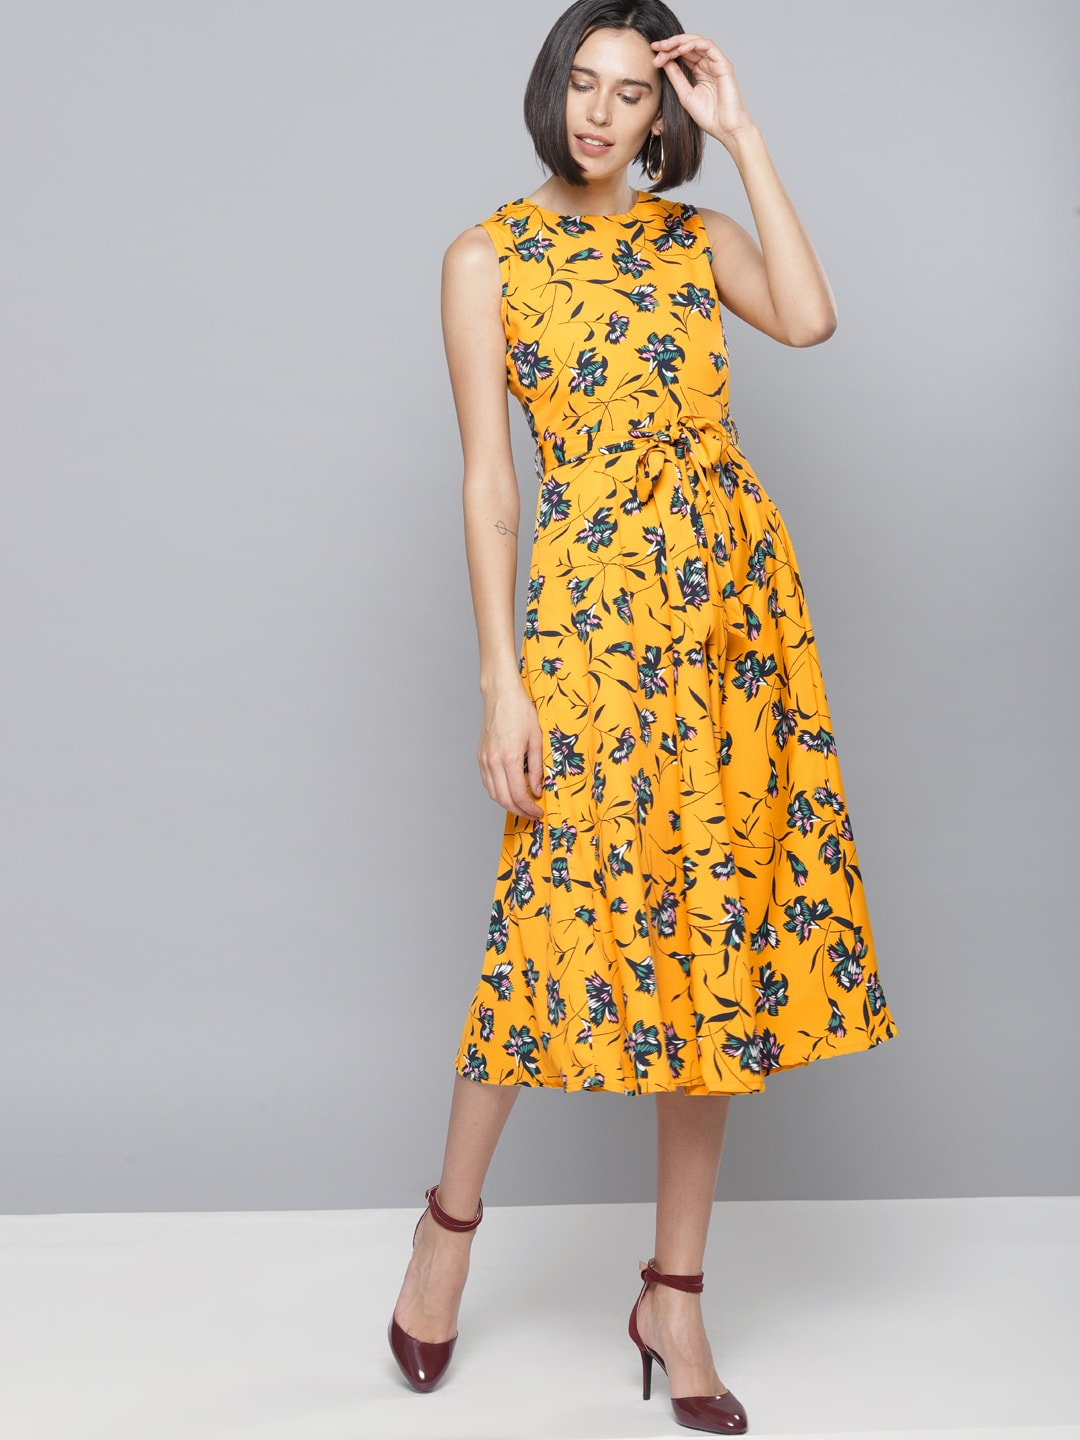 c691ca6a7fa2a Yellow Dresses - Buy Yellow Dresses online in India